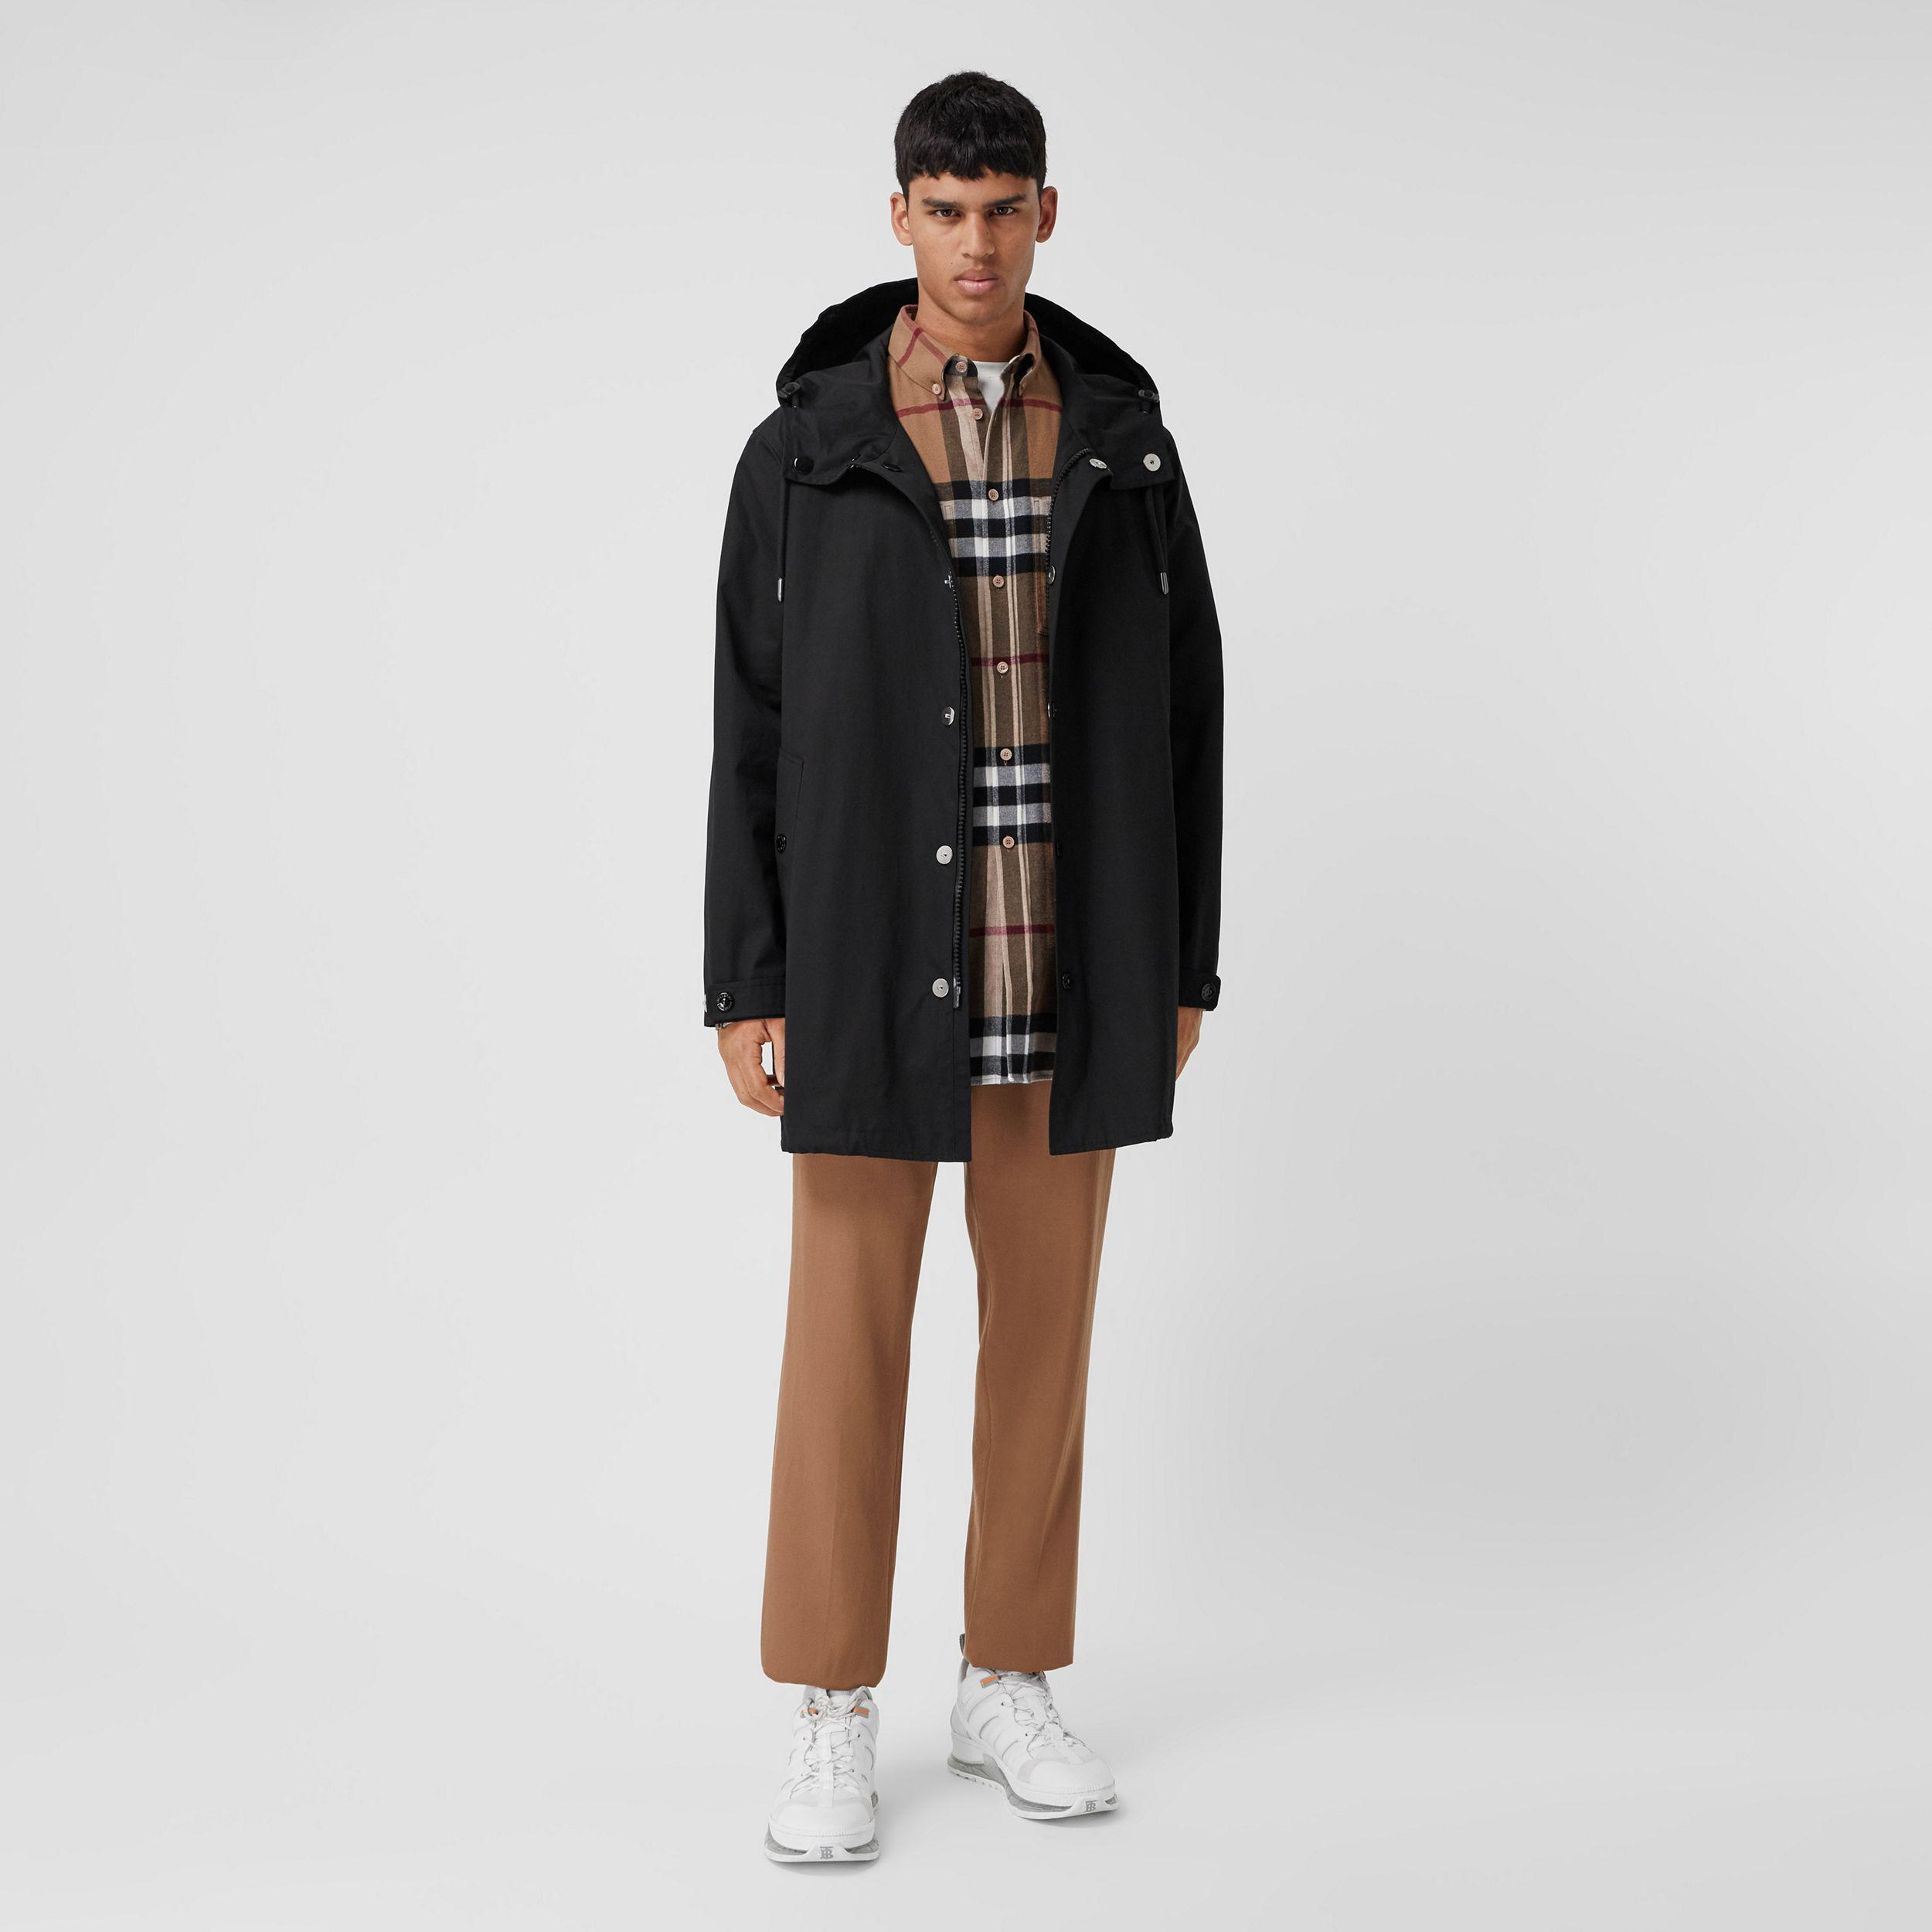 Logo Appliqué Cotton Hooded Coat in Black - Men | Burberry - 1